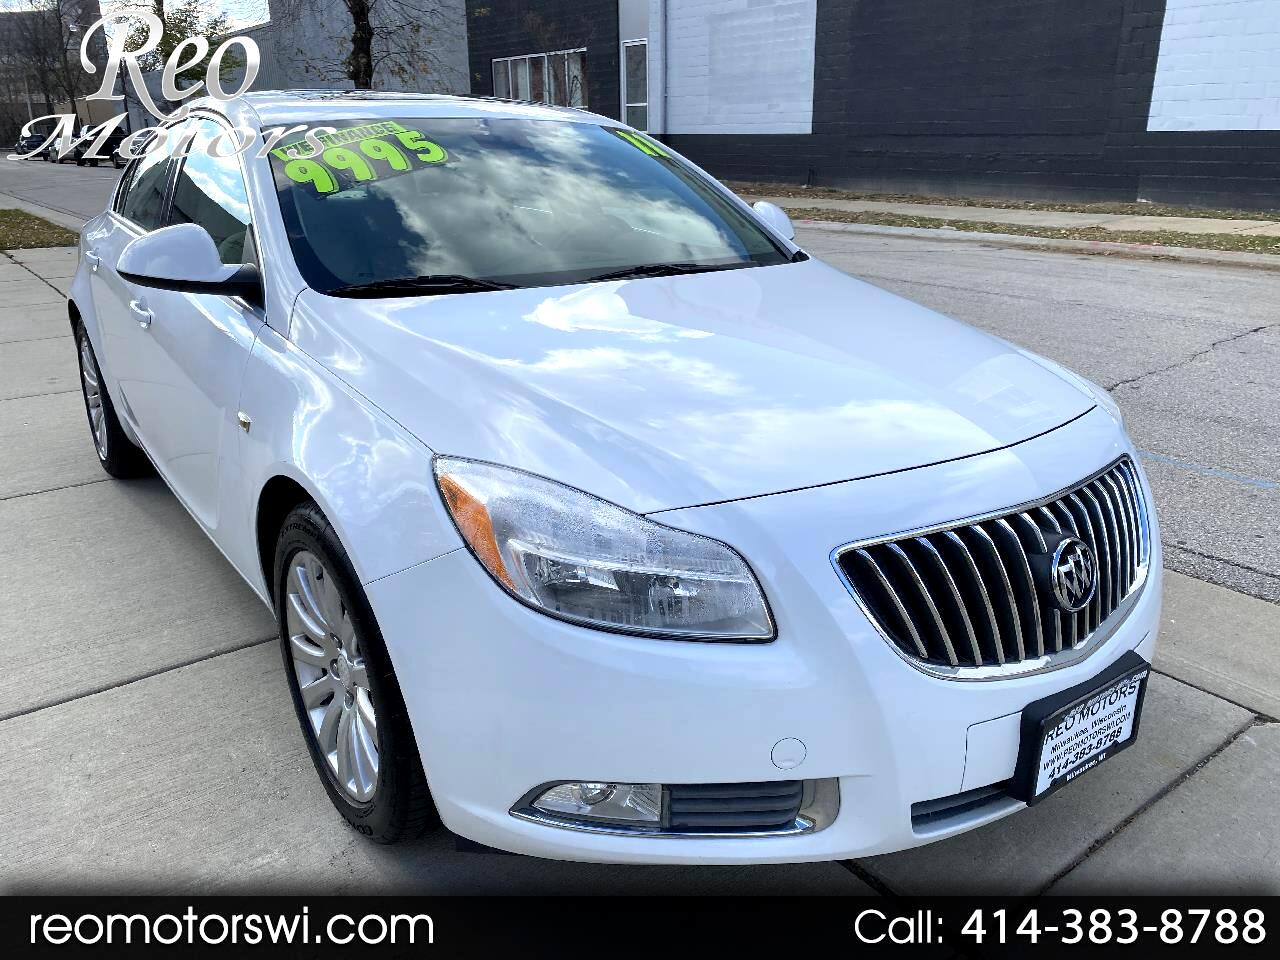 Buick Regal CXL - 4XL 2011